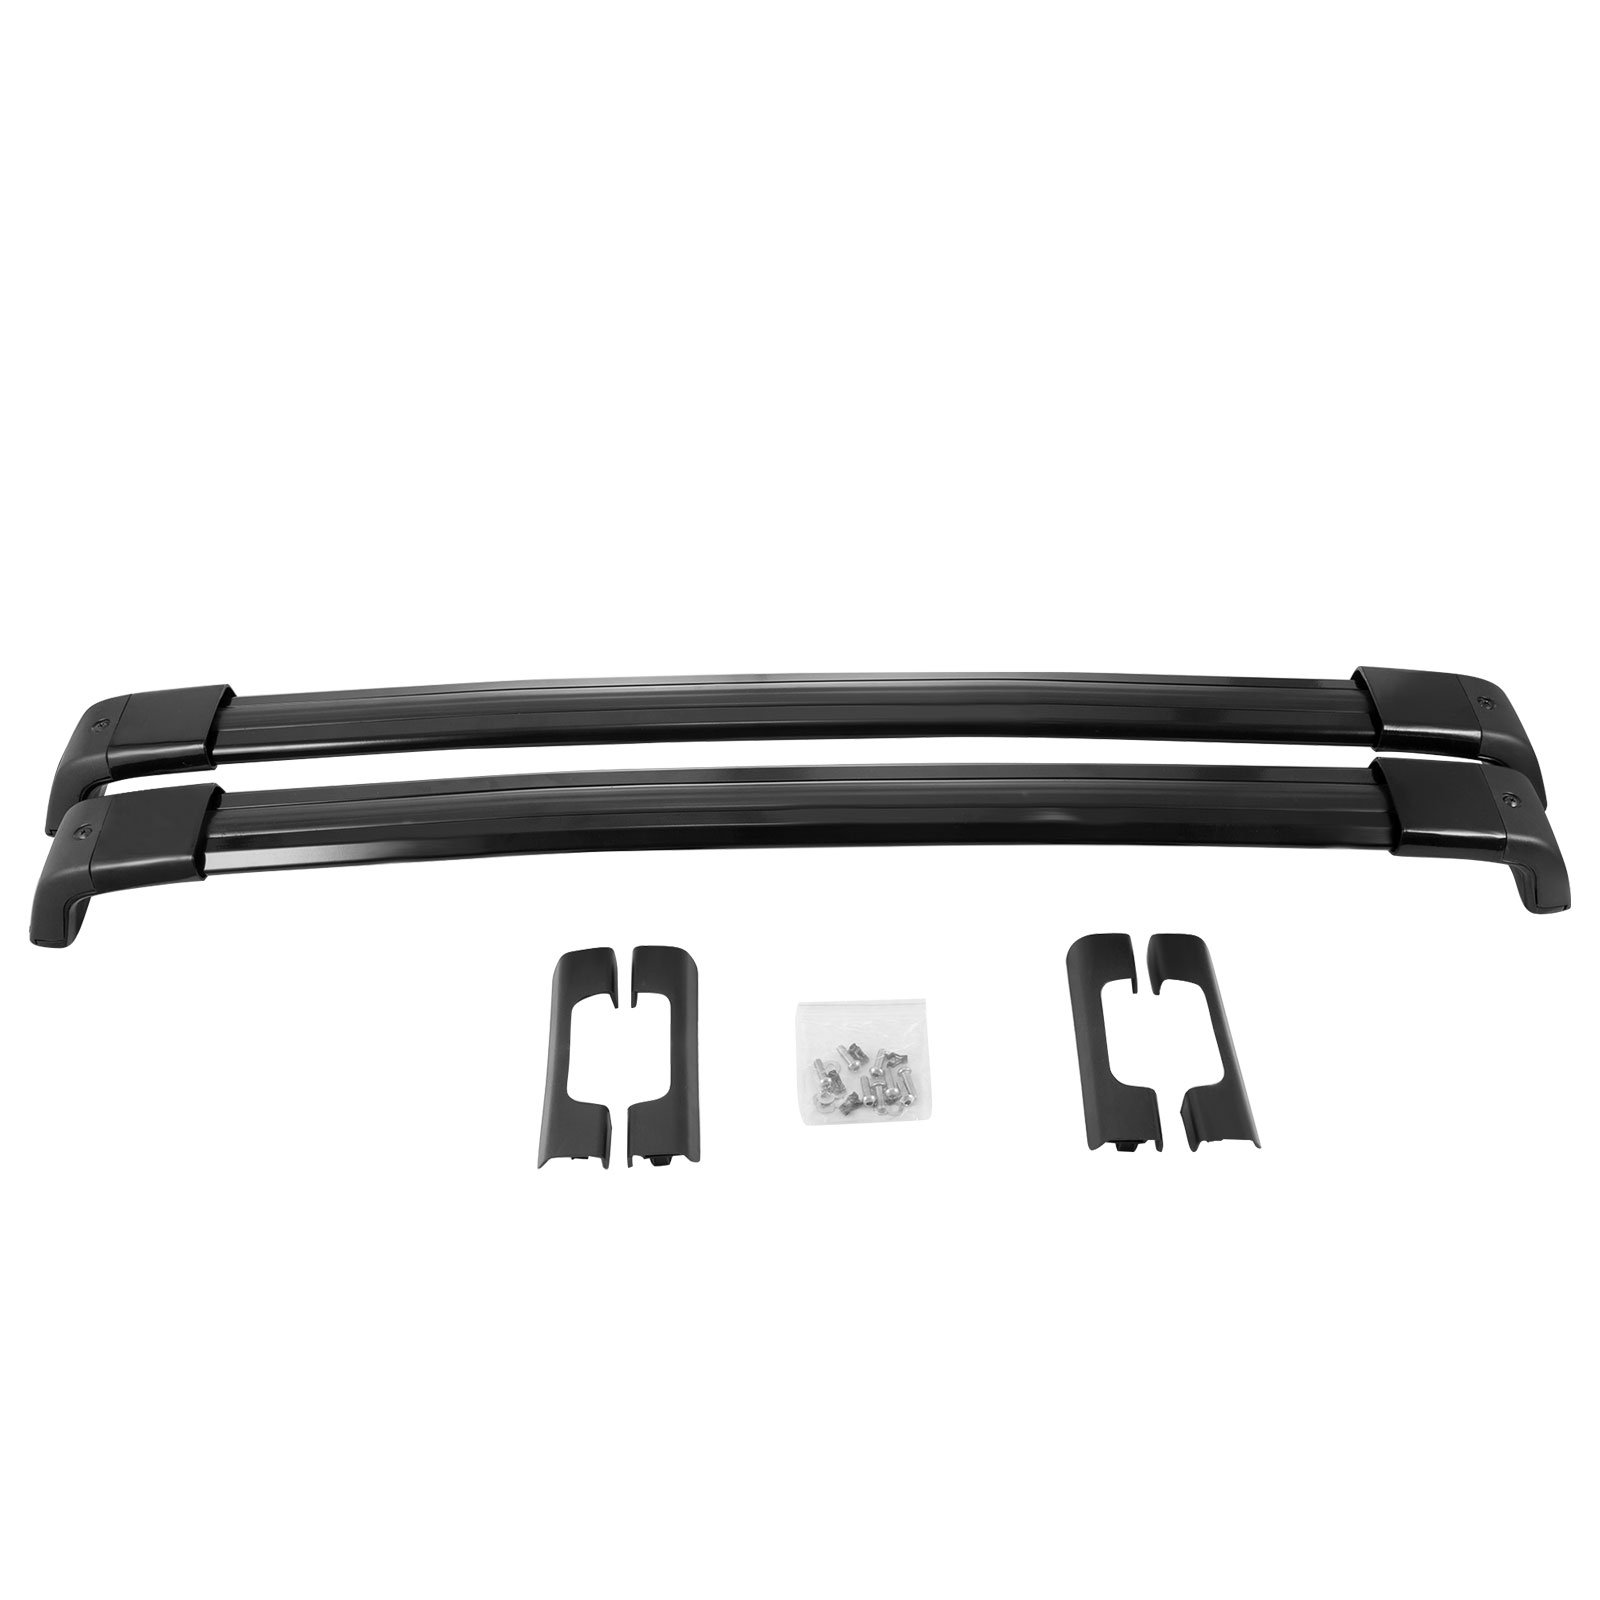 SucceBuy Roof Rack Cross Bars For 2007-2014 Roof Rack Rail Cross Bar Max 200LBs Luggage Roof Rack Bars For Cars Aluminum Alloy by SucceBuy (Image #9)